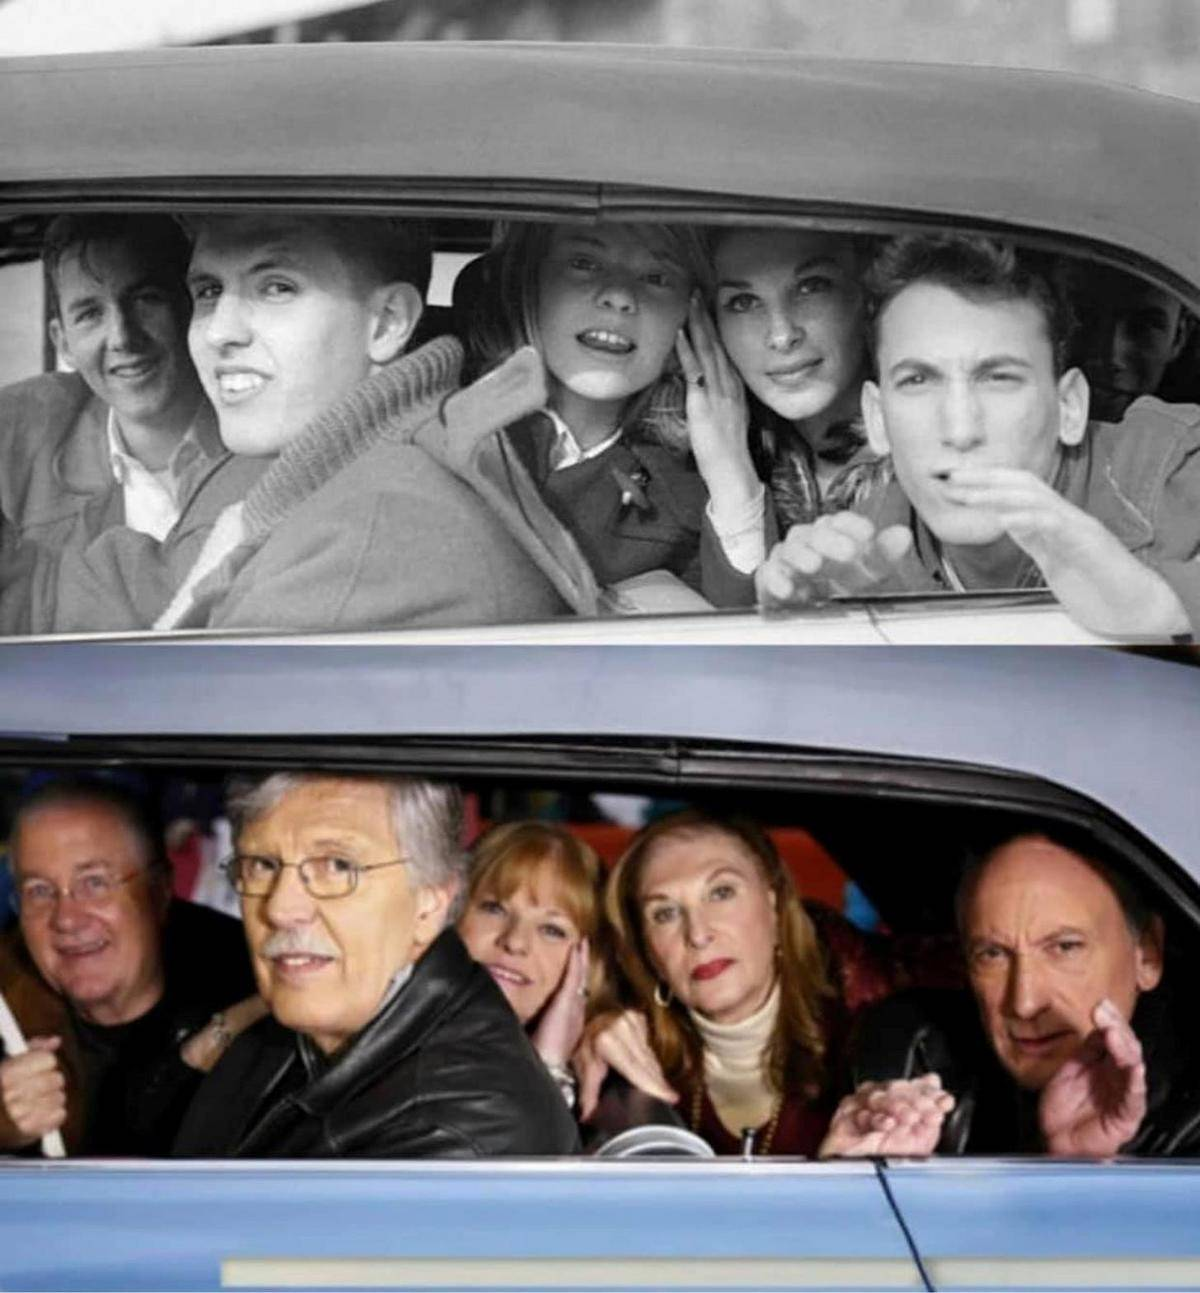 photo of 5 teams in a car recreated with same group of people years later